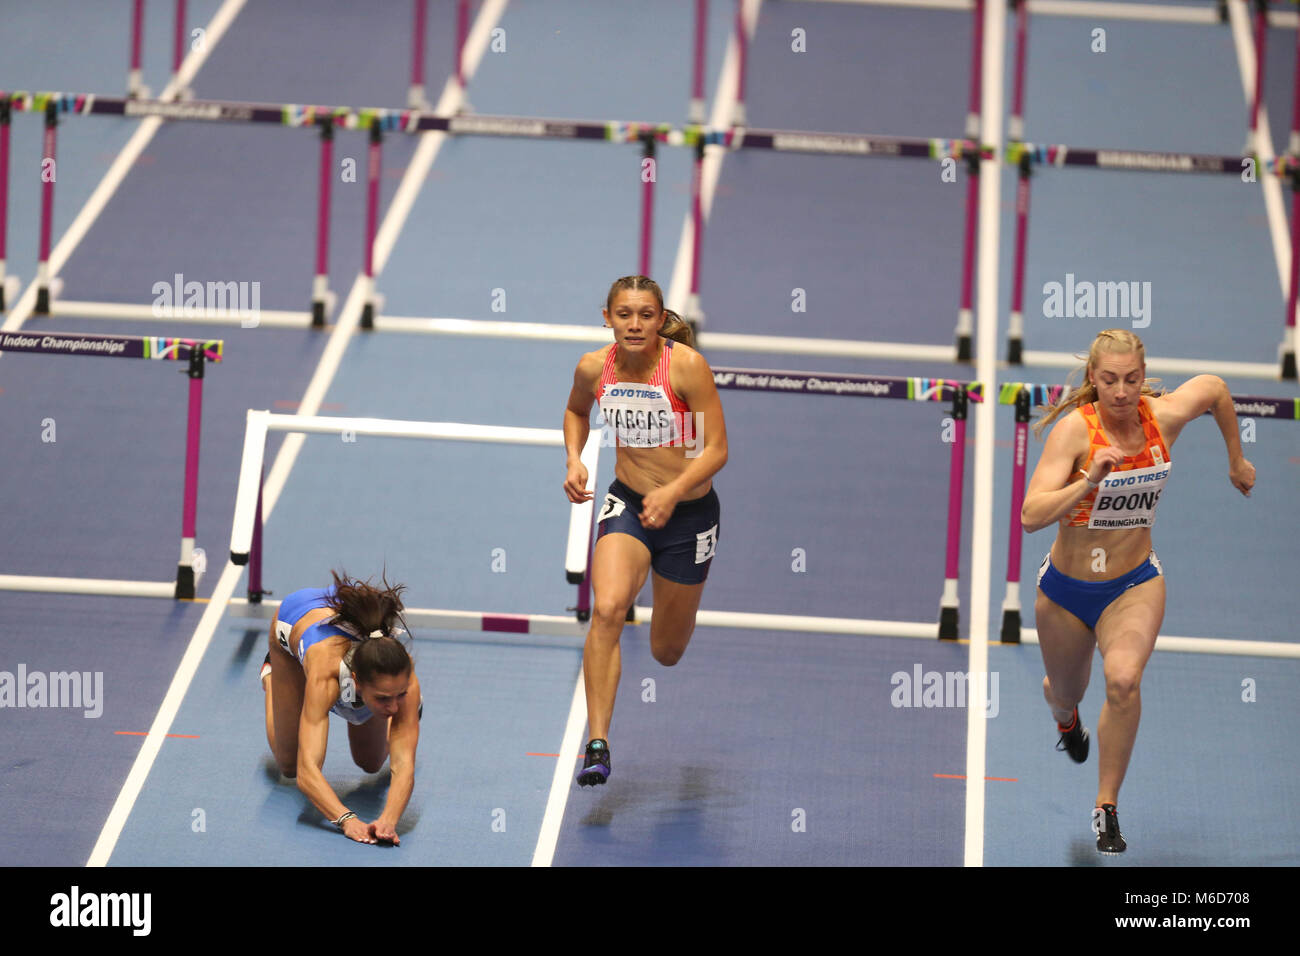 Birmingham, UK. 2nd Mar, 2018. Elisavet Pesiridou (Greece) hits her hurdle and falls hard during the IAAF World - Stock Image